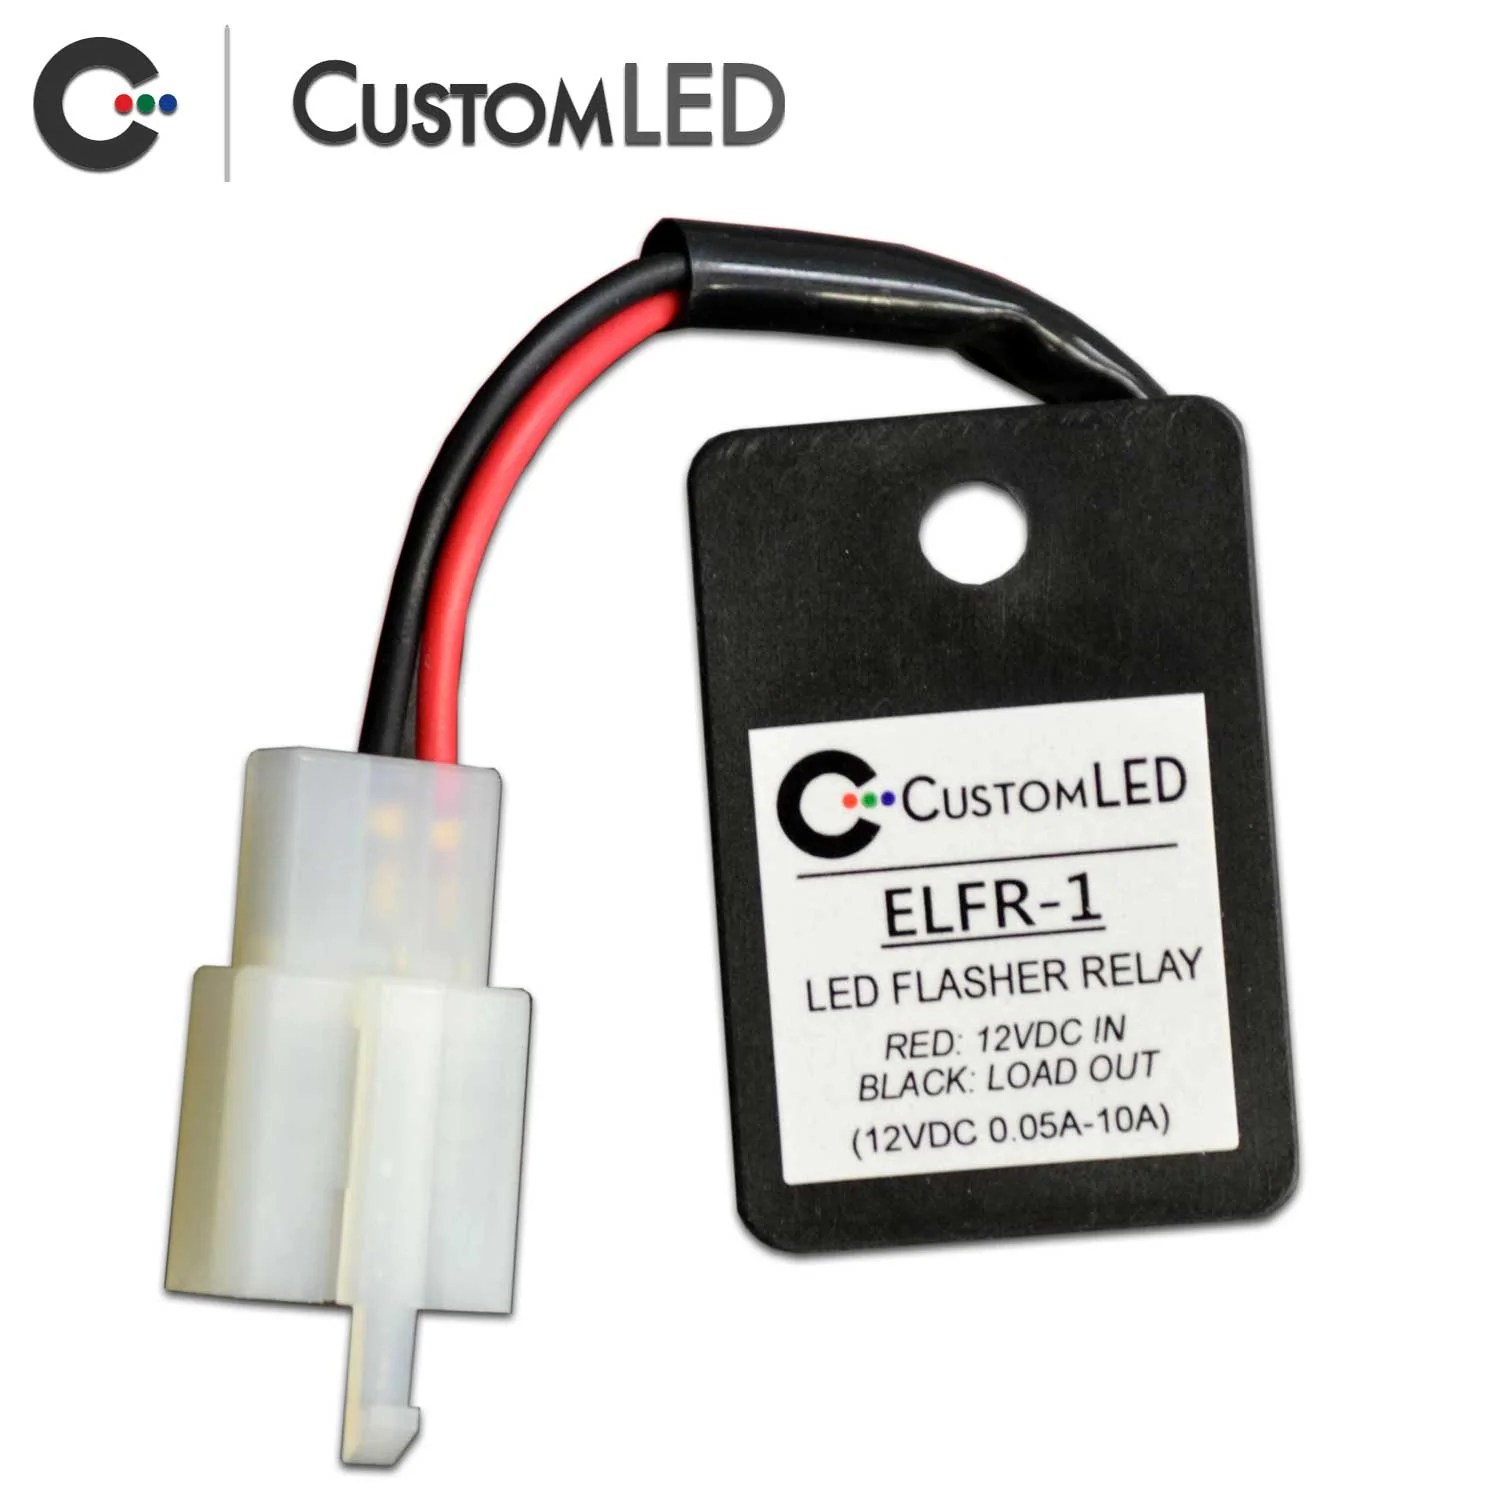 elfr 1 electronic led flasher relay with oem connector [ 1500 x 1500 Pixel ]